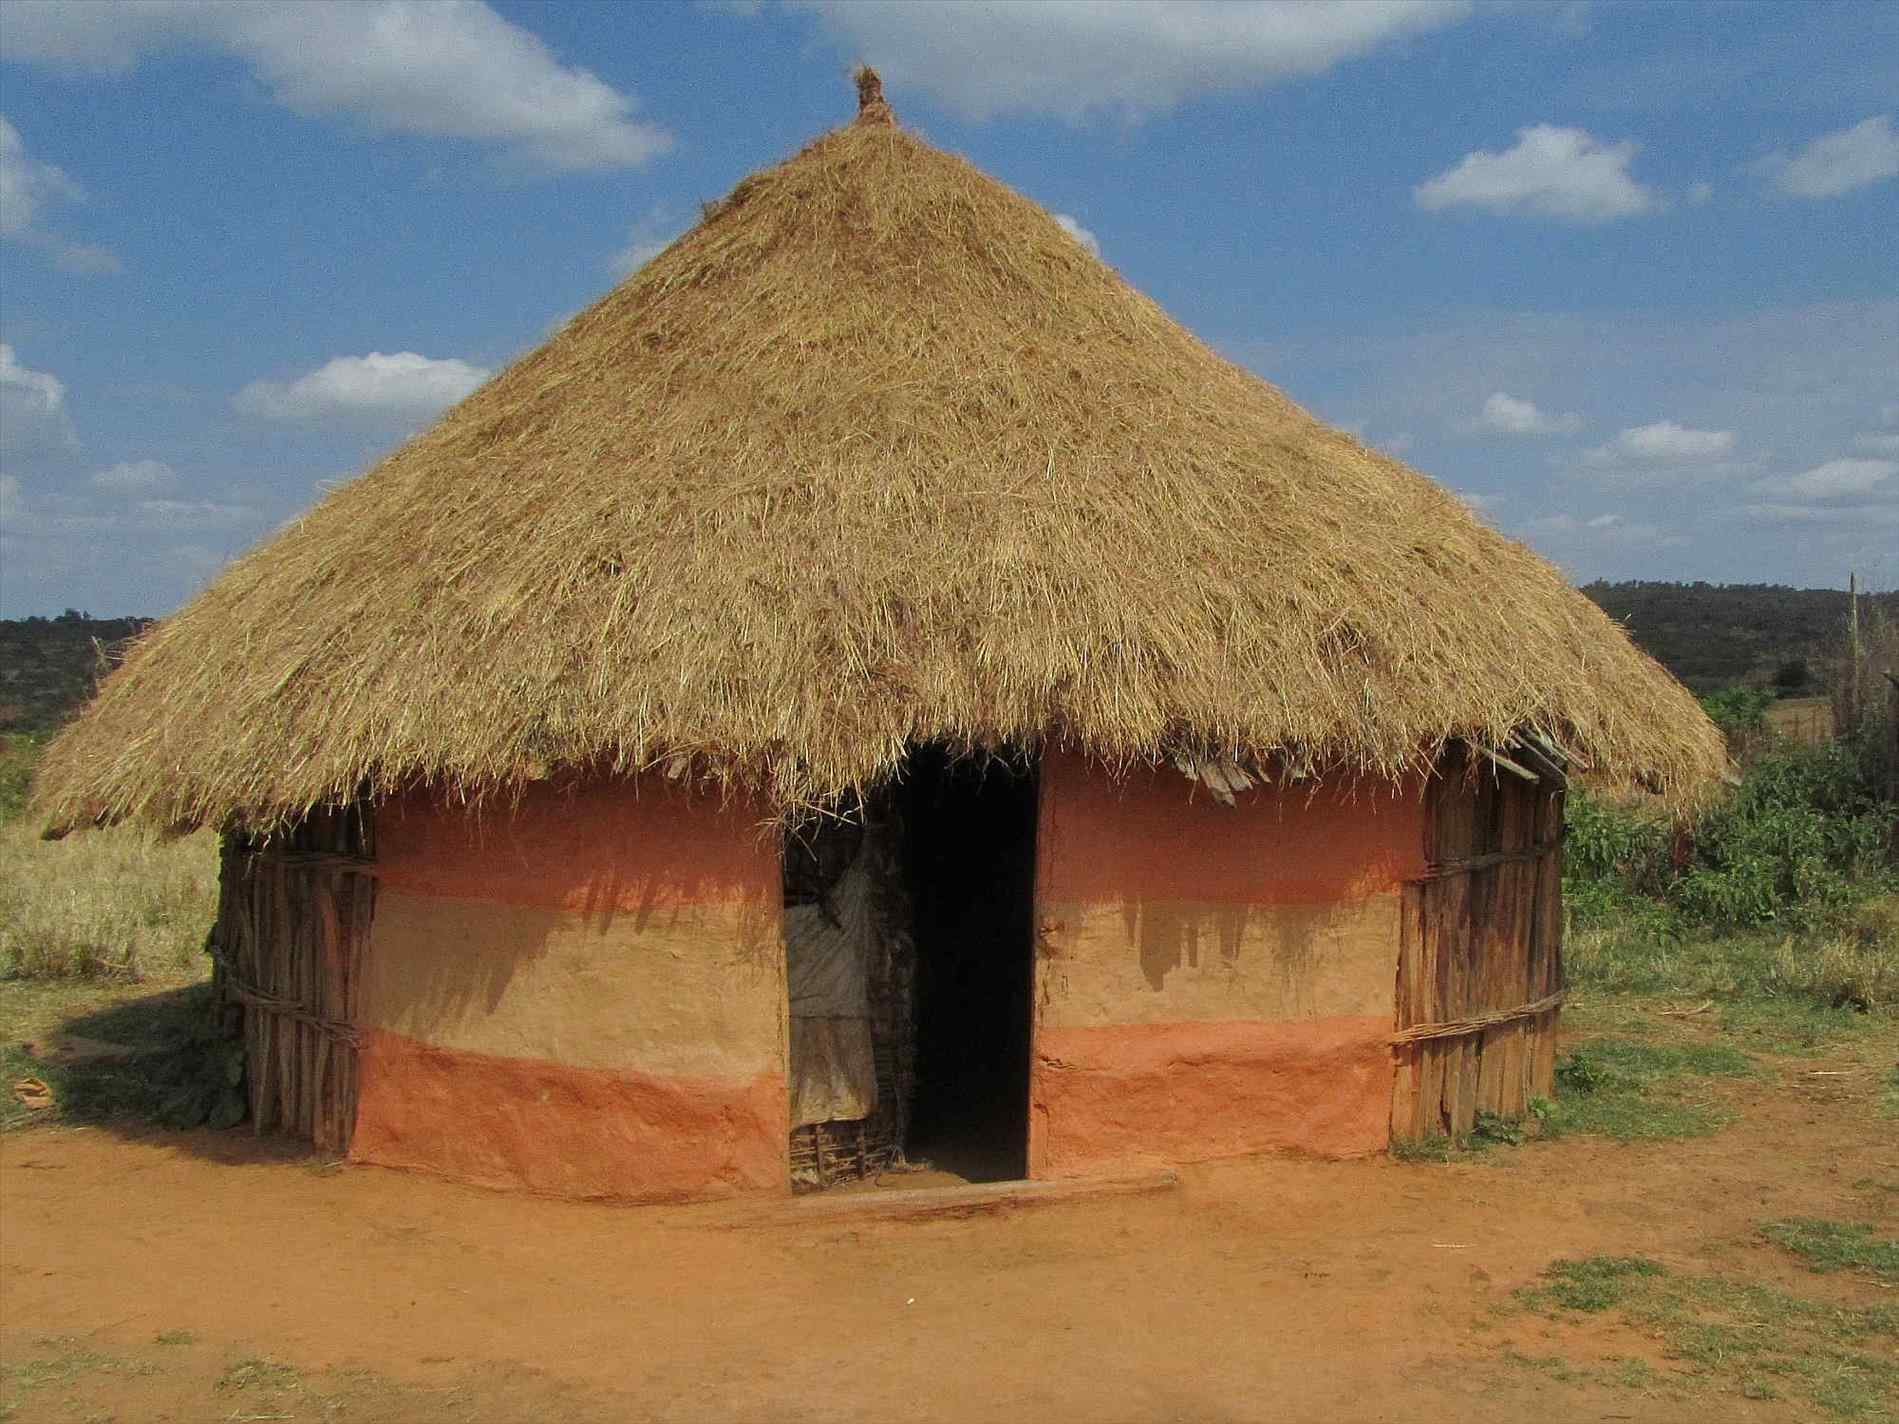 African clipart mud hut. House africa publizzity com